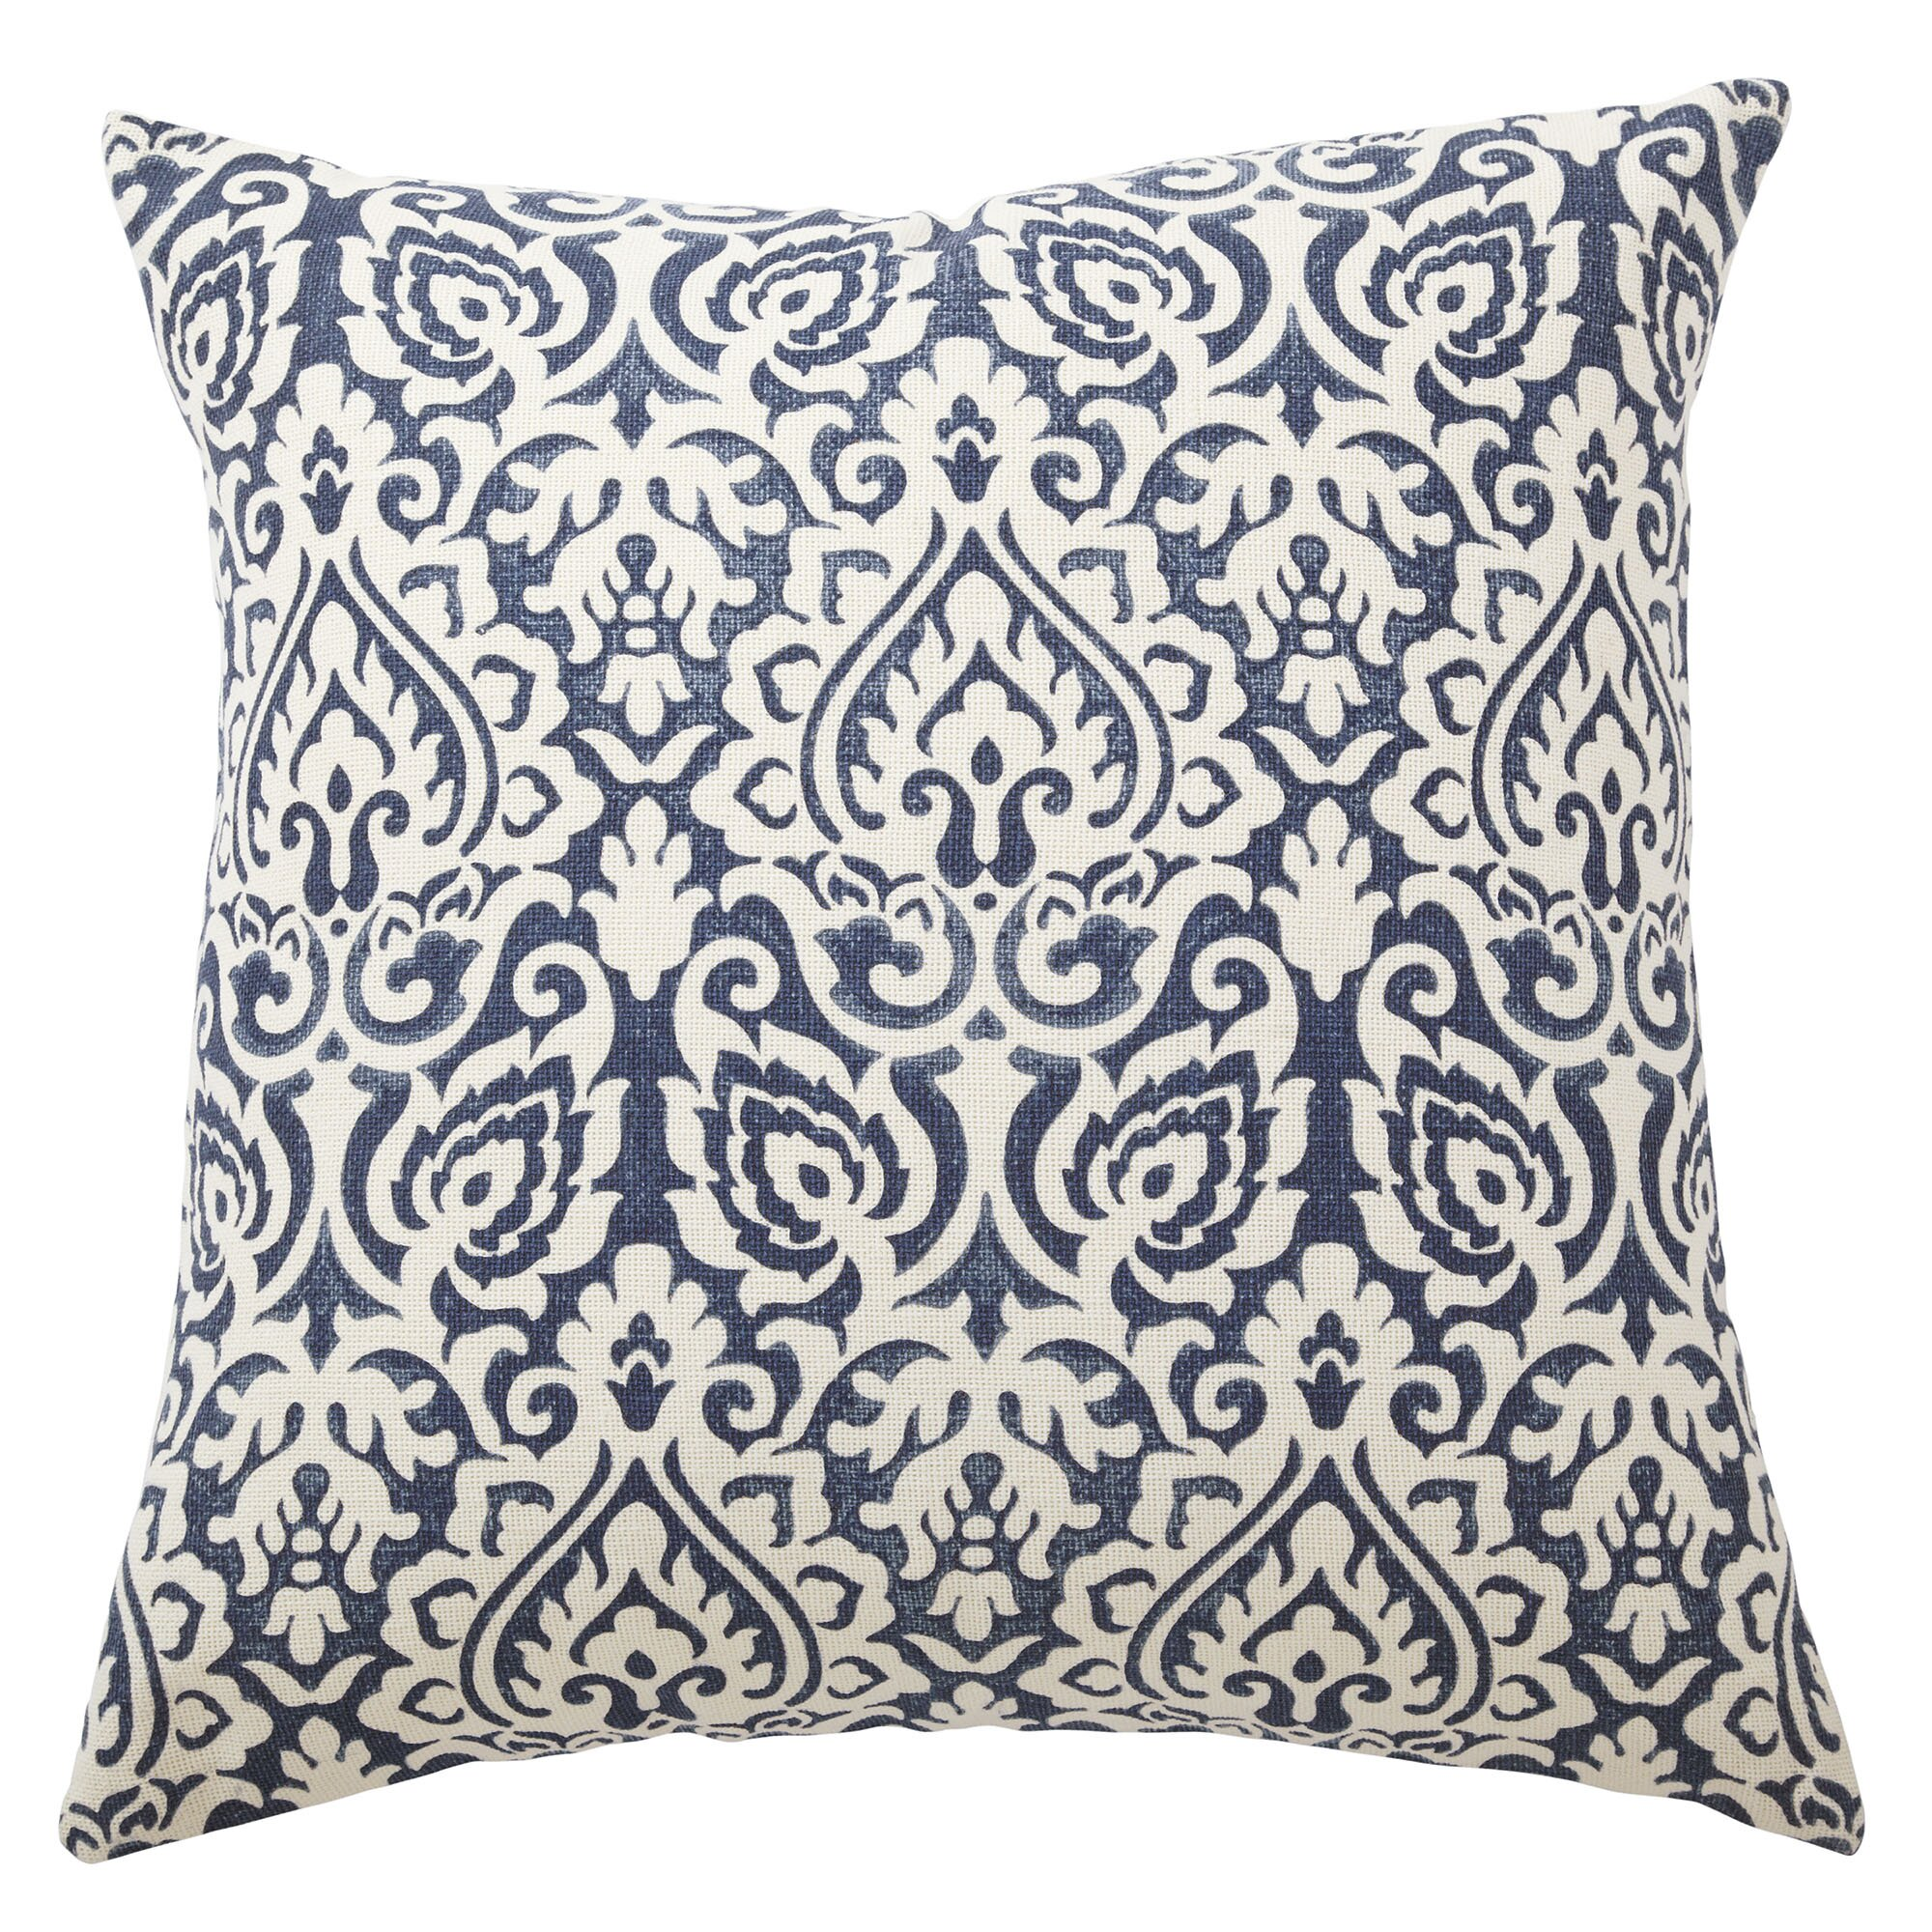 Wayfair Decorative Pillow Covers : Alcott Hill Brasstown Throw Pillow Cover & Reviews Wayfair